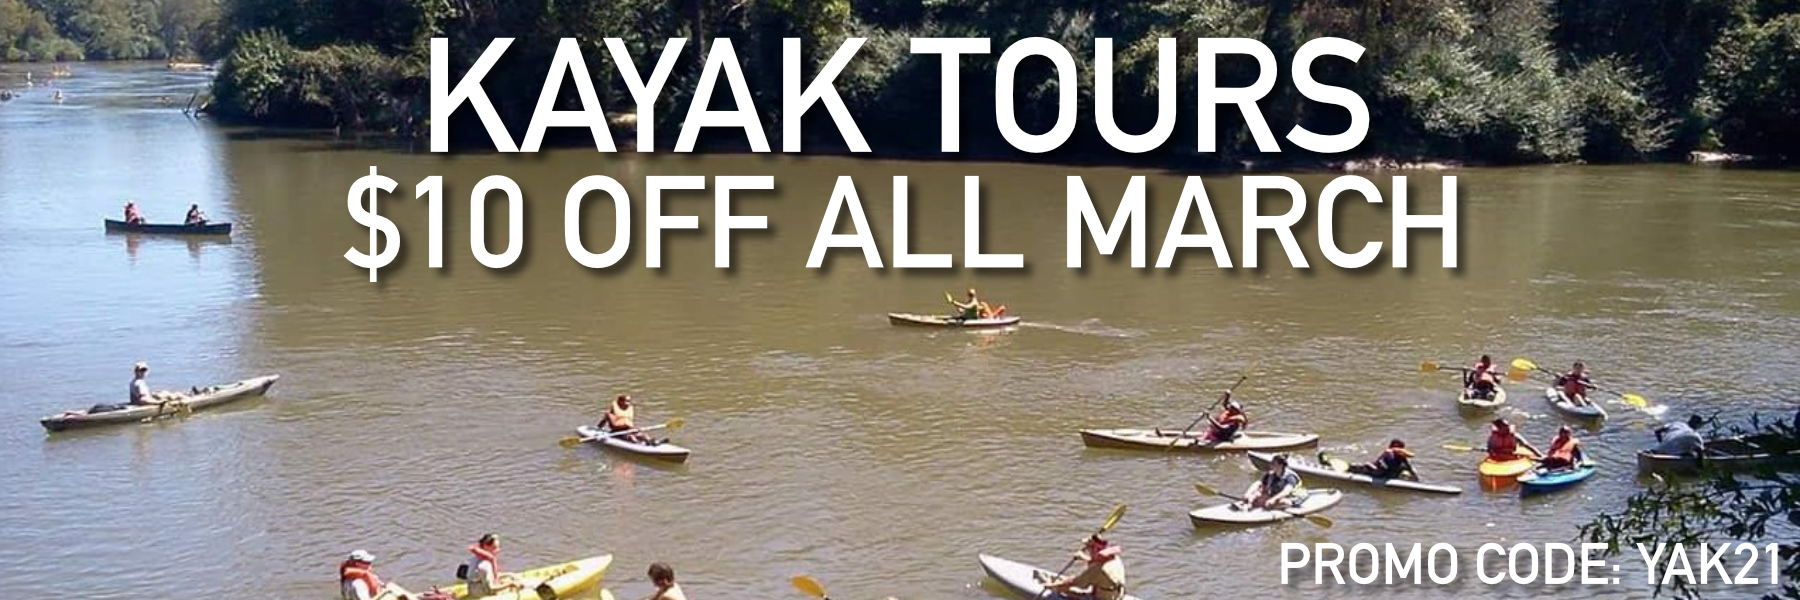 $10 Off Kayaking March